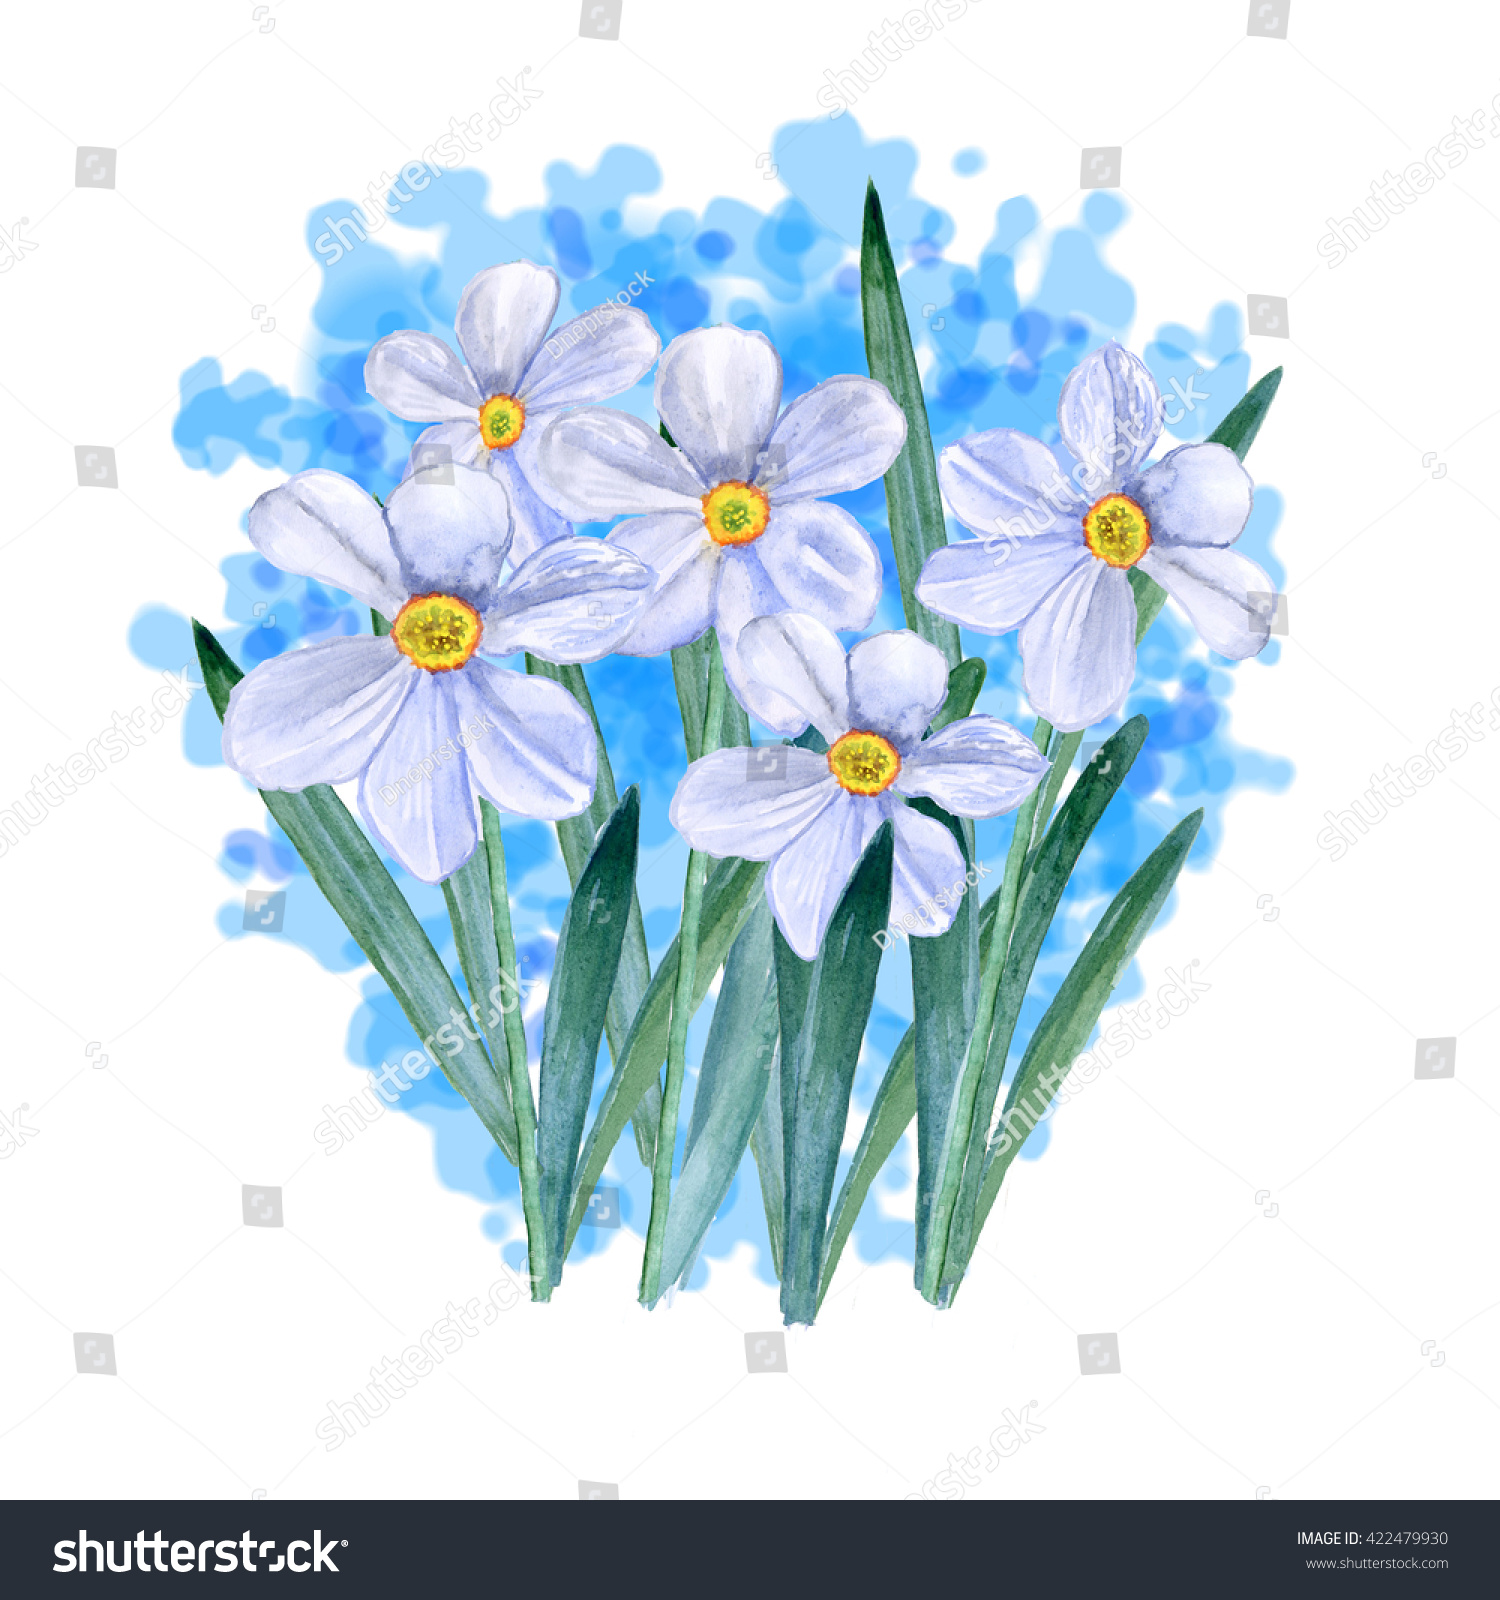 Watercolor Drawing Spring Flowers Narcissus Hand Stock Illustration